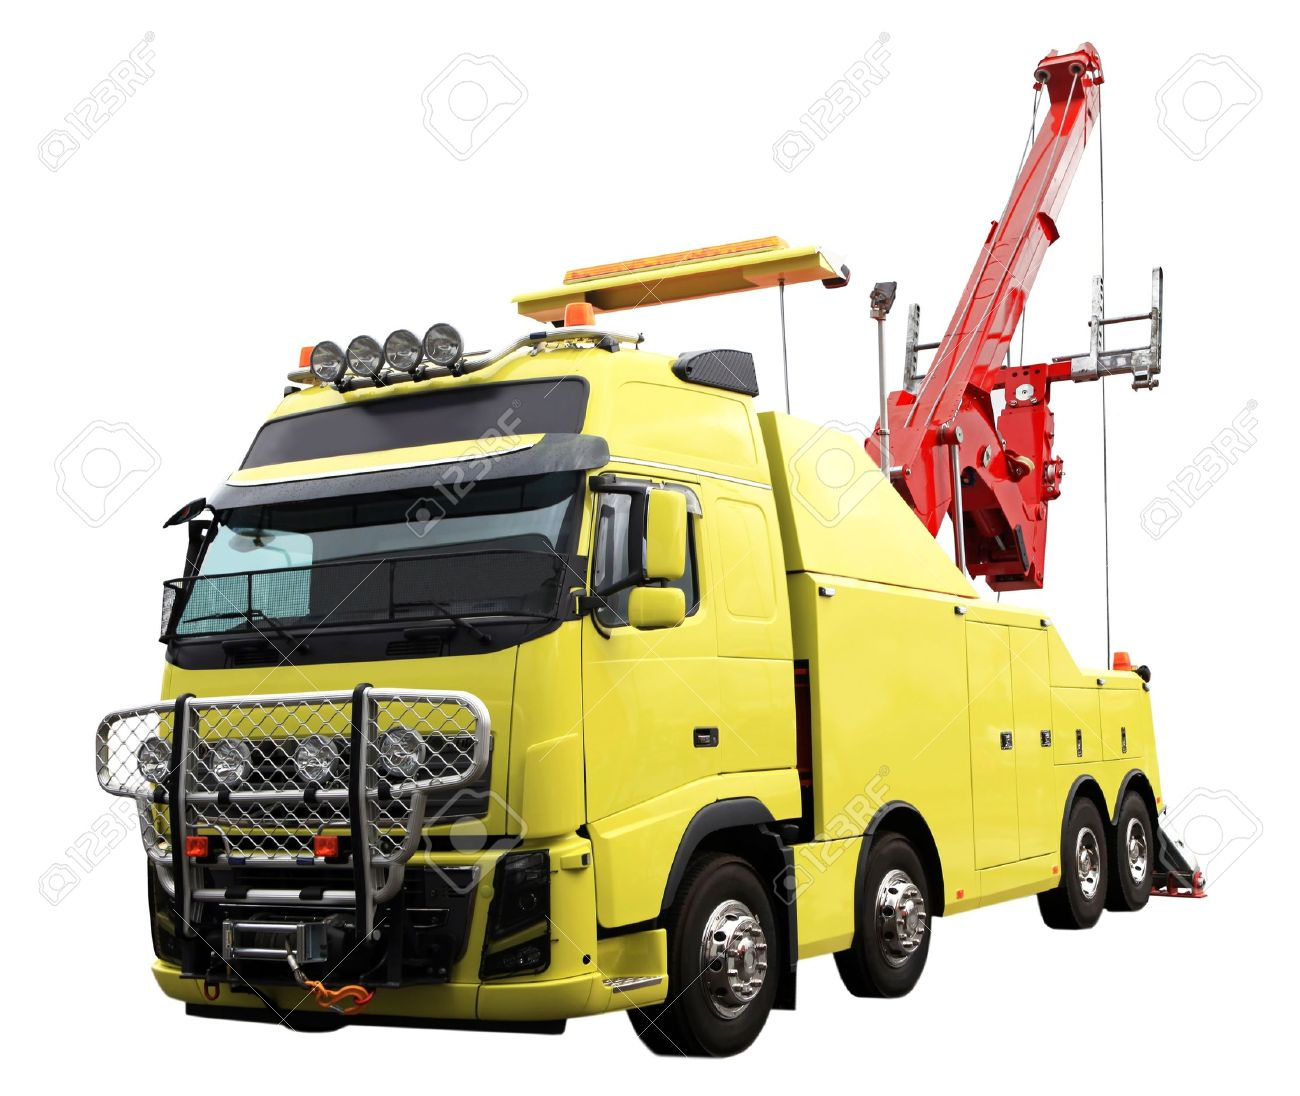 heavy duty wrecker used for towing semi trucks. Isolated on white Stock Photo - 10689477